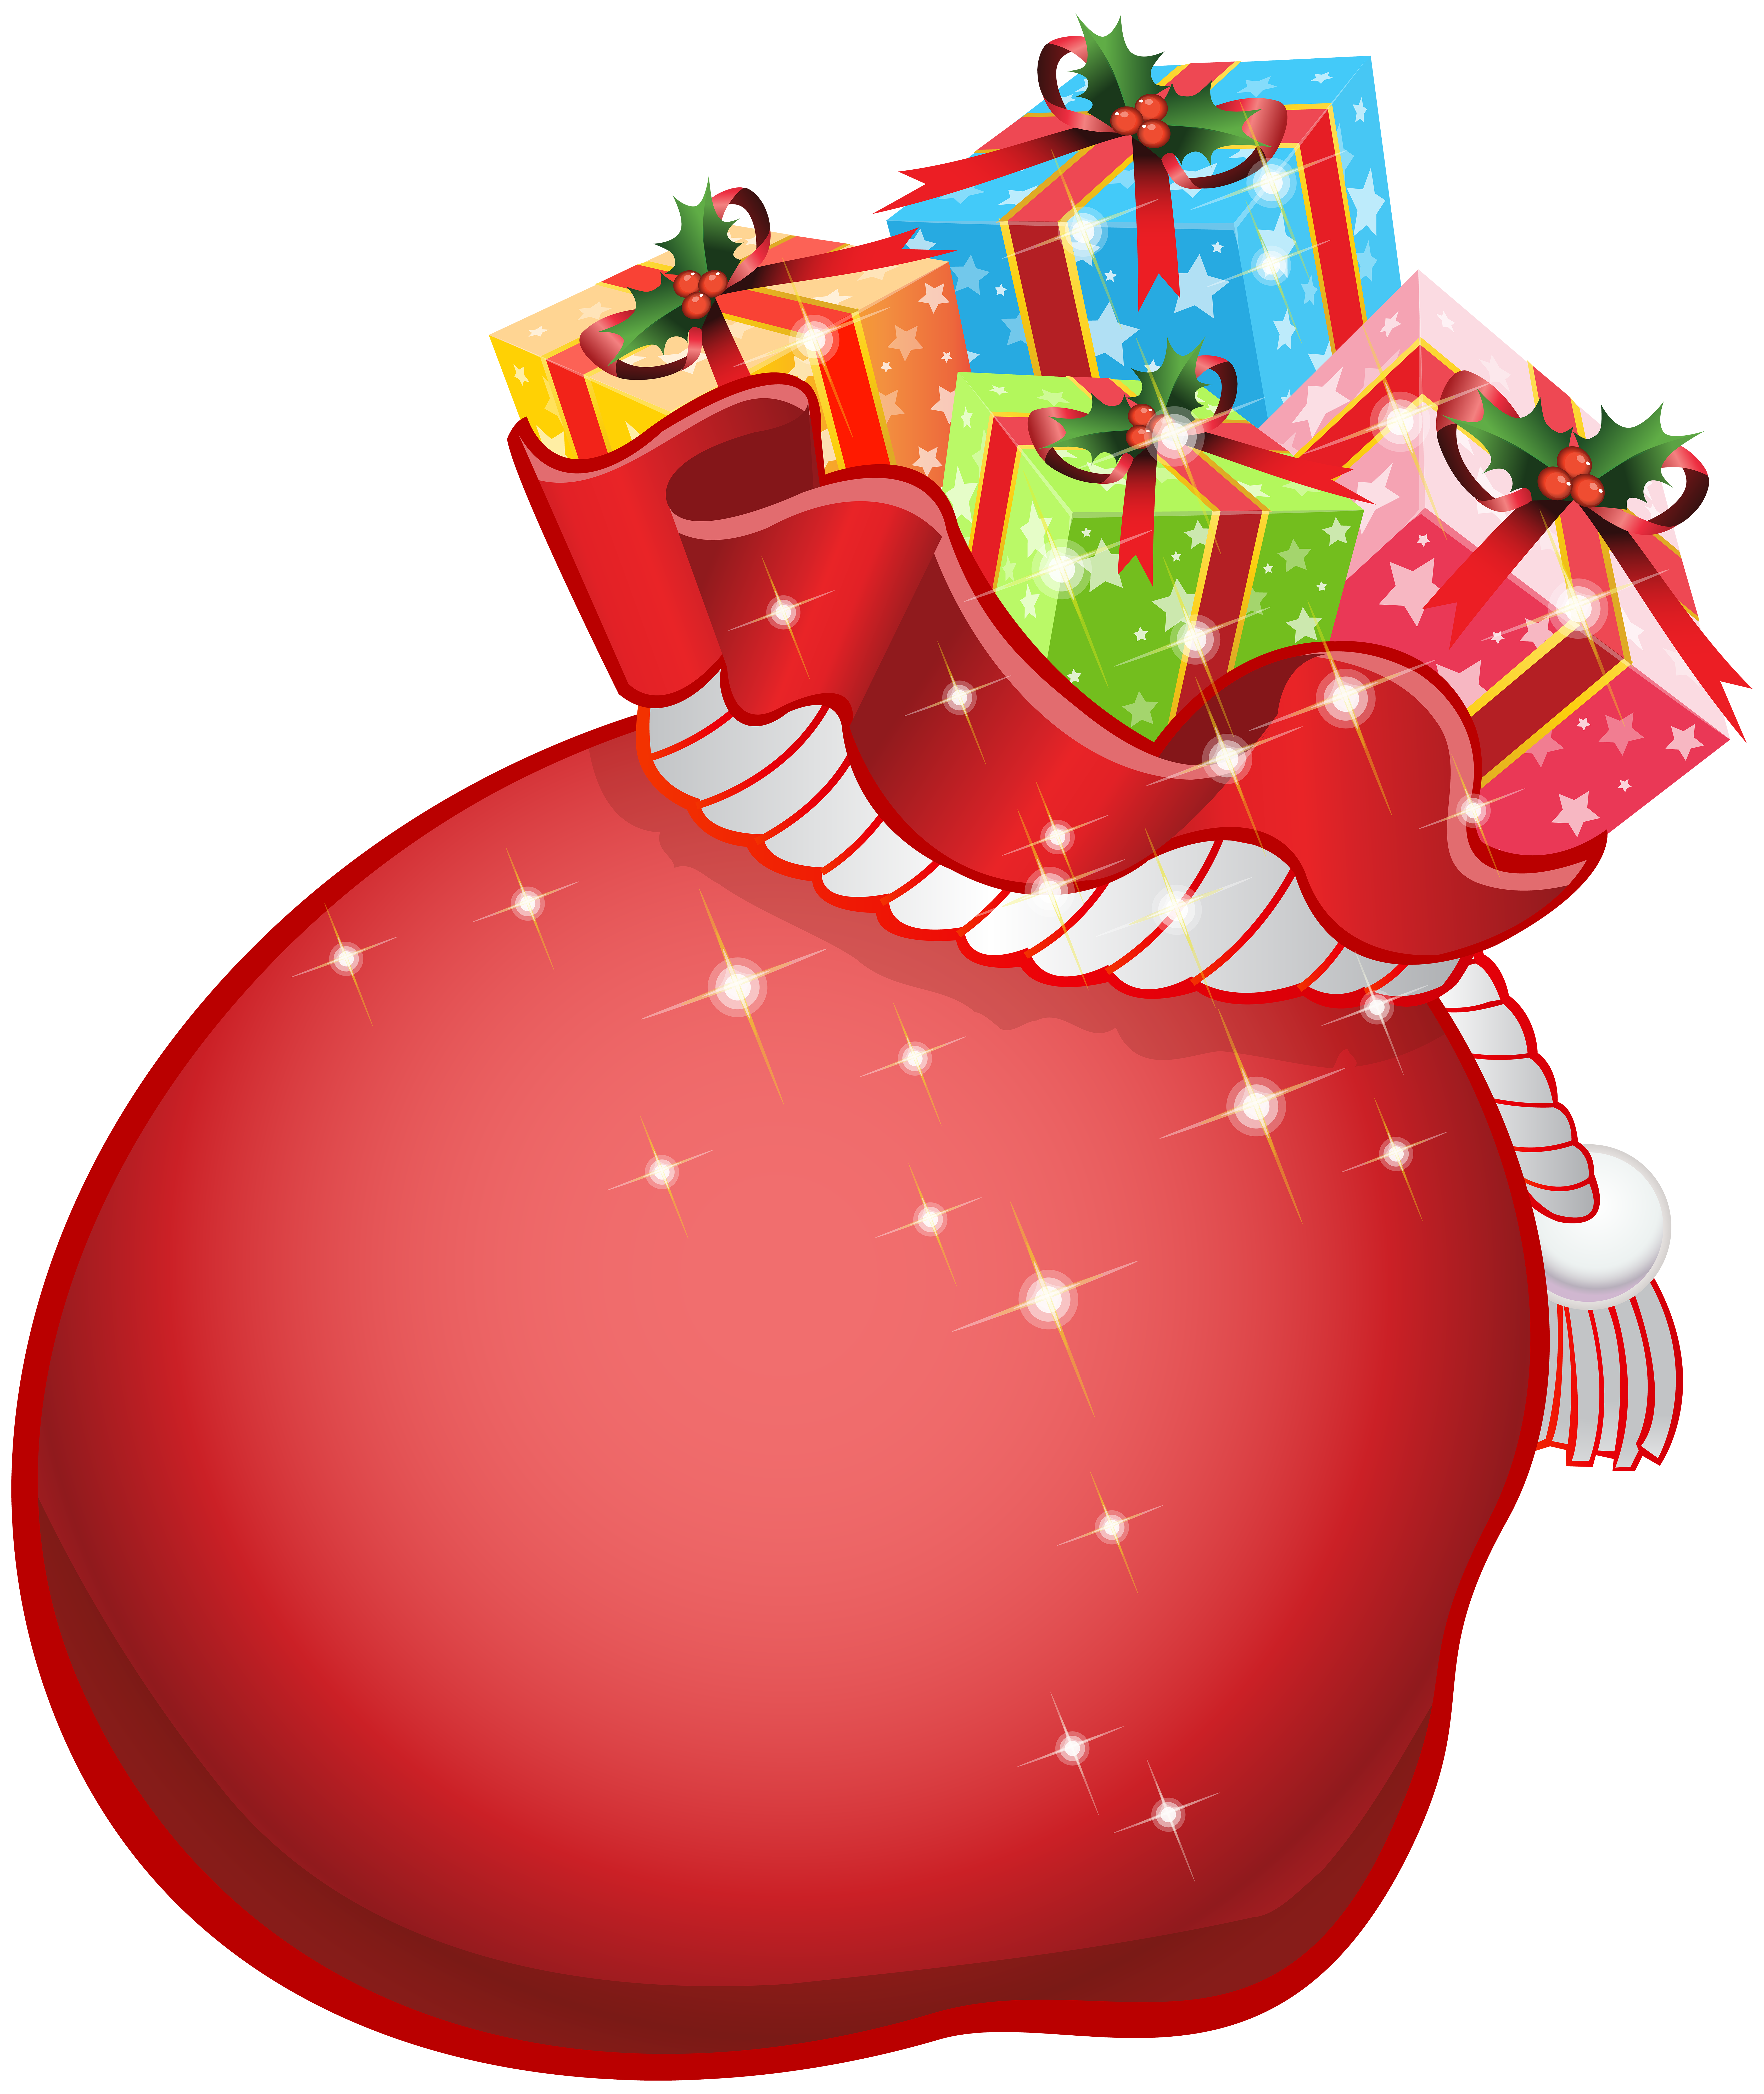 Bag of gifts clipart svg freeuse stock Santa Bag with Gifts Transparent PNG Clip Art | Gallery ... svg freeuse stock